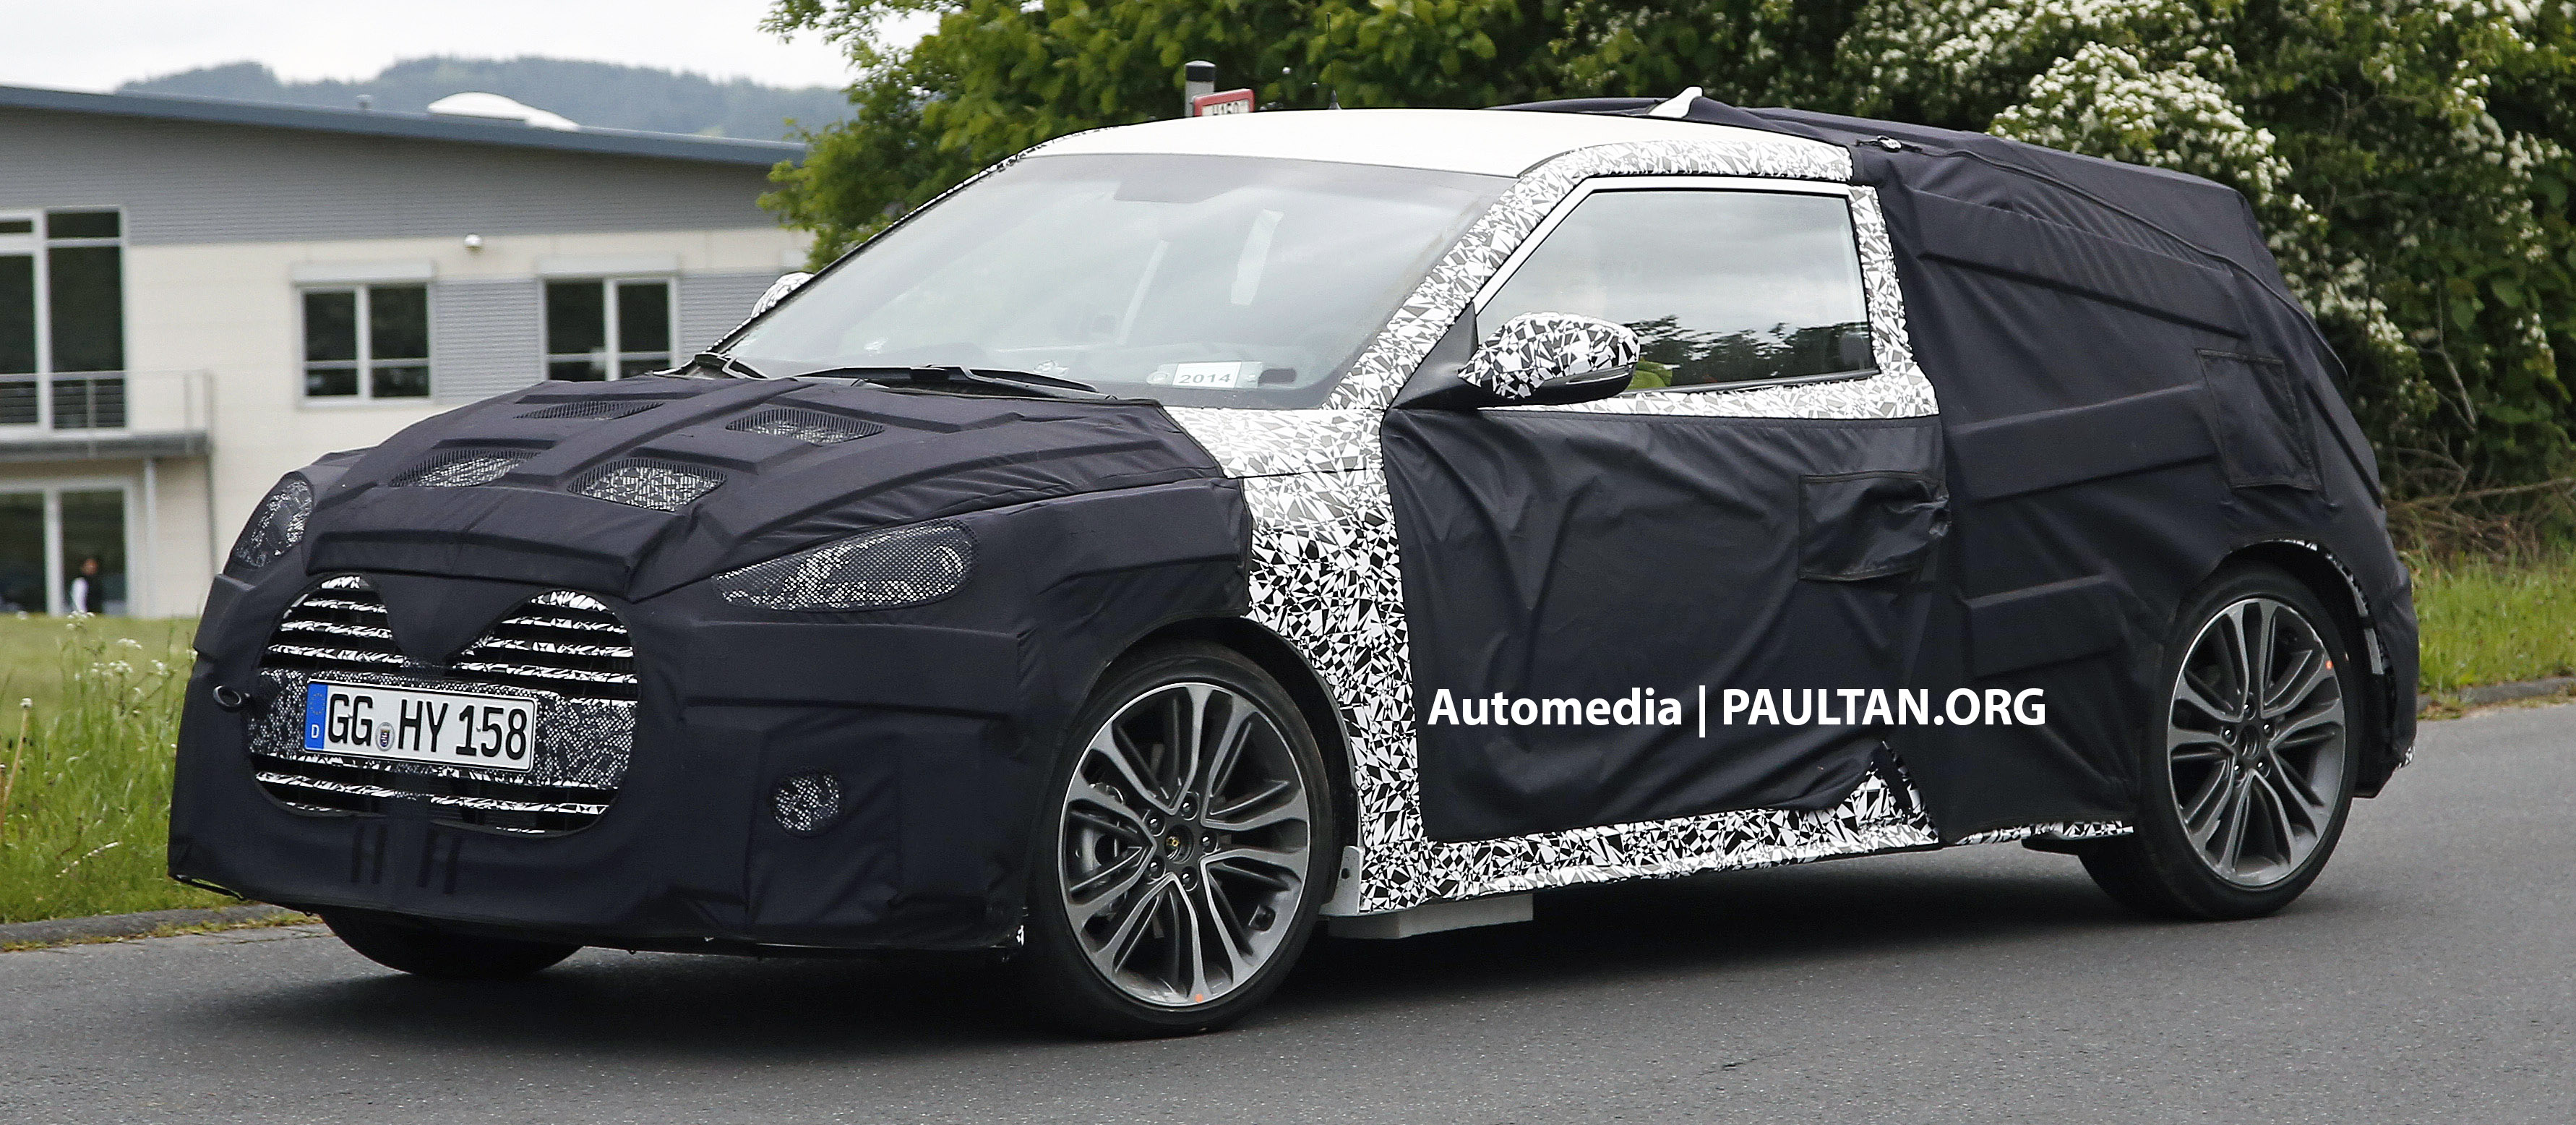 Hyundai Spy Shots >> SPIED: Hyundai Veloster Turbo facelift in Germany Image 247371